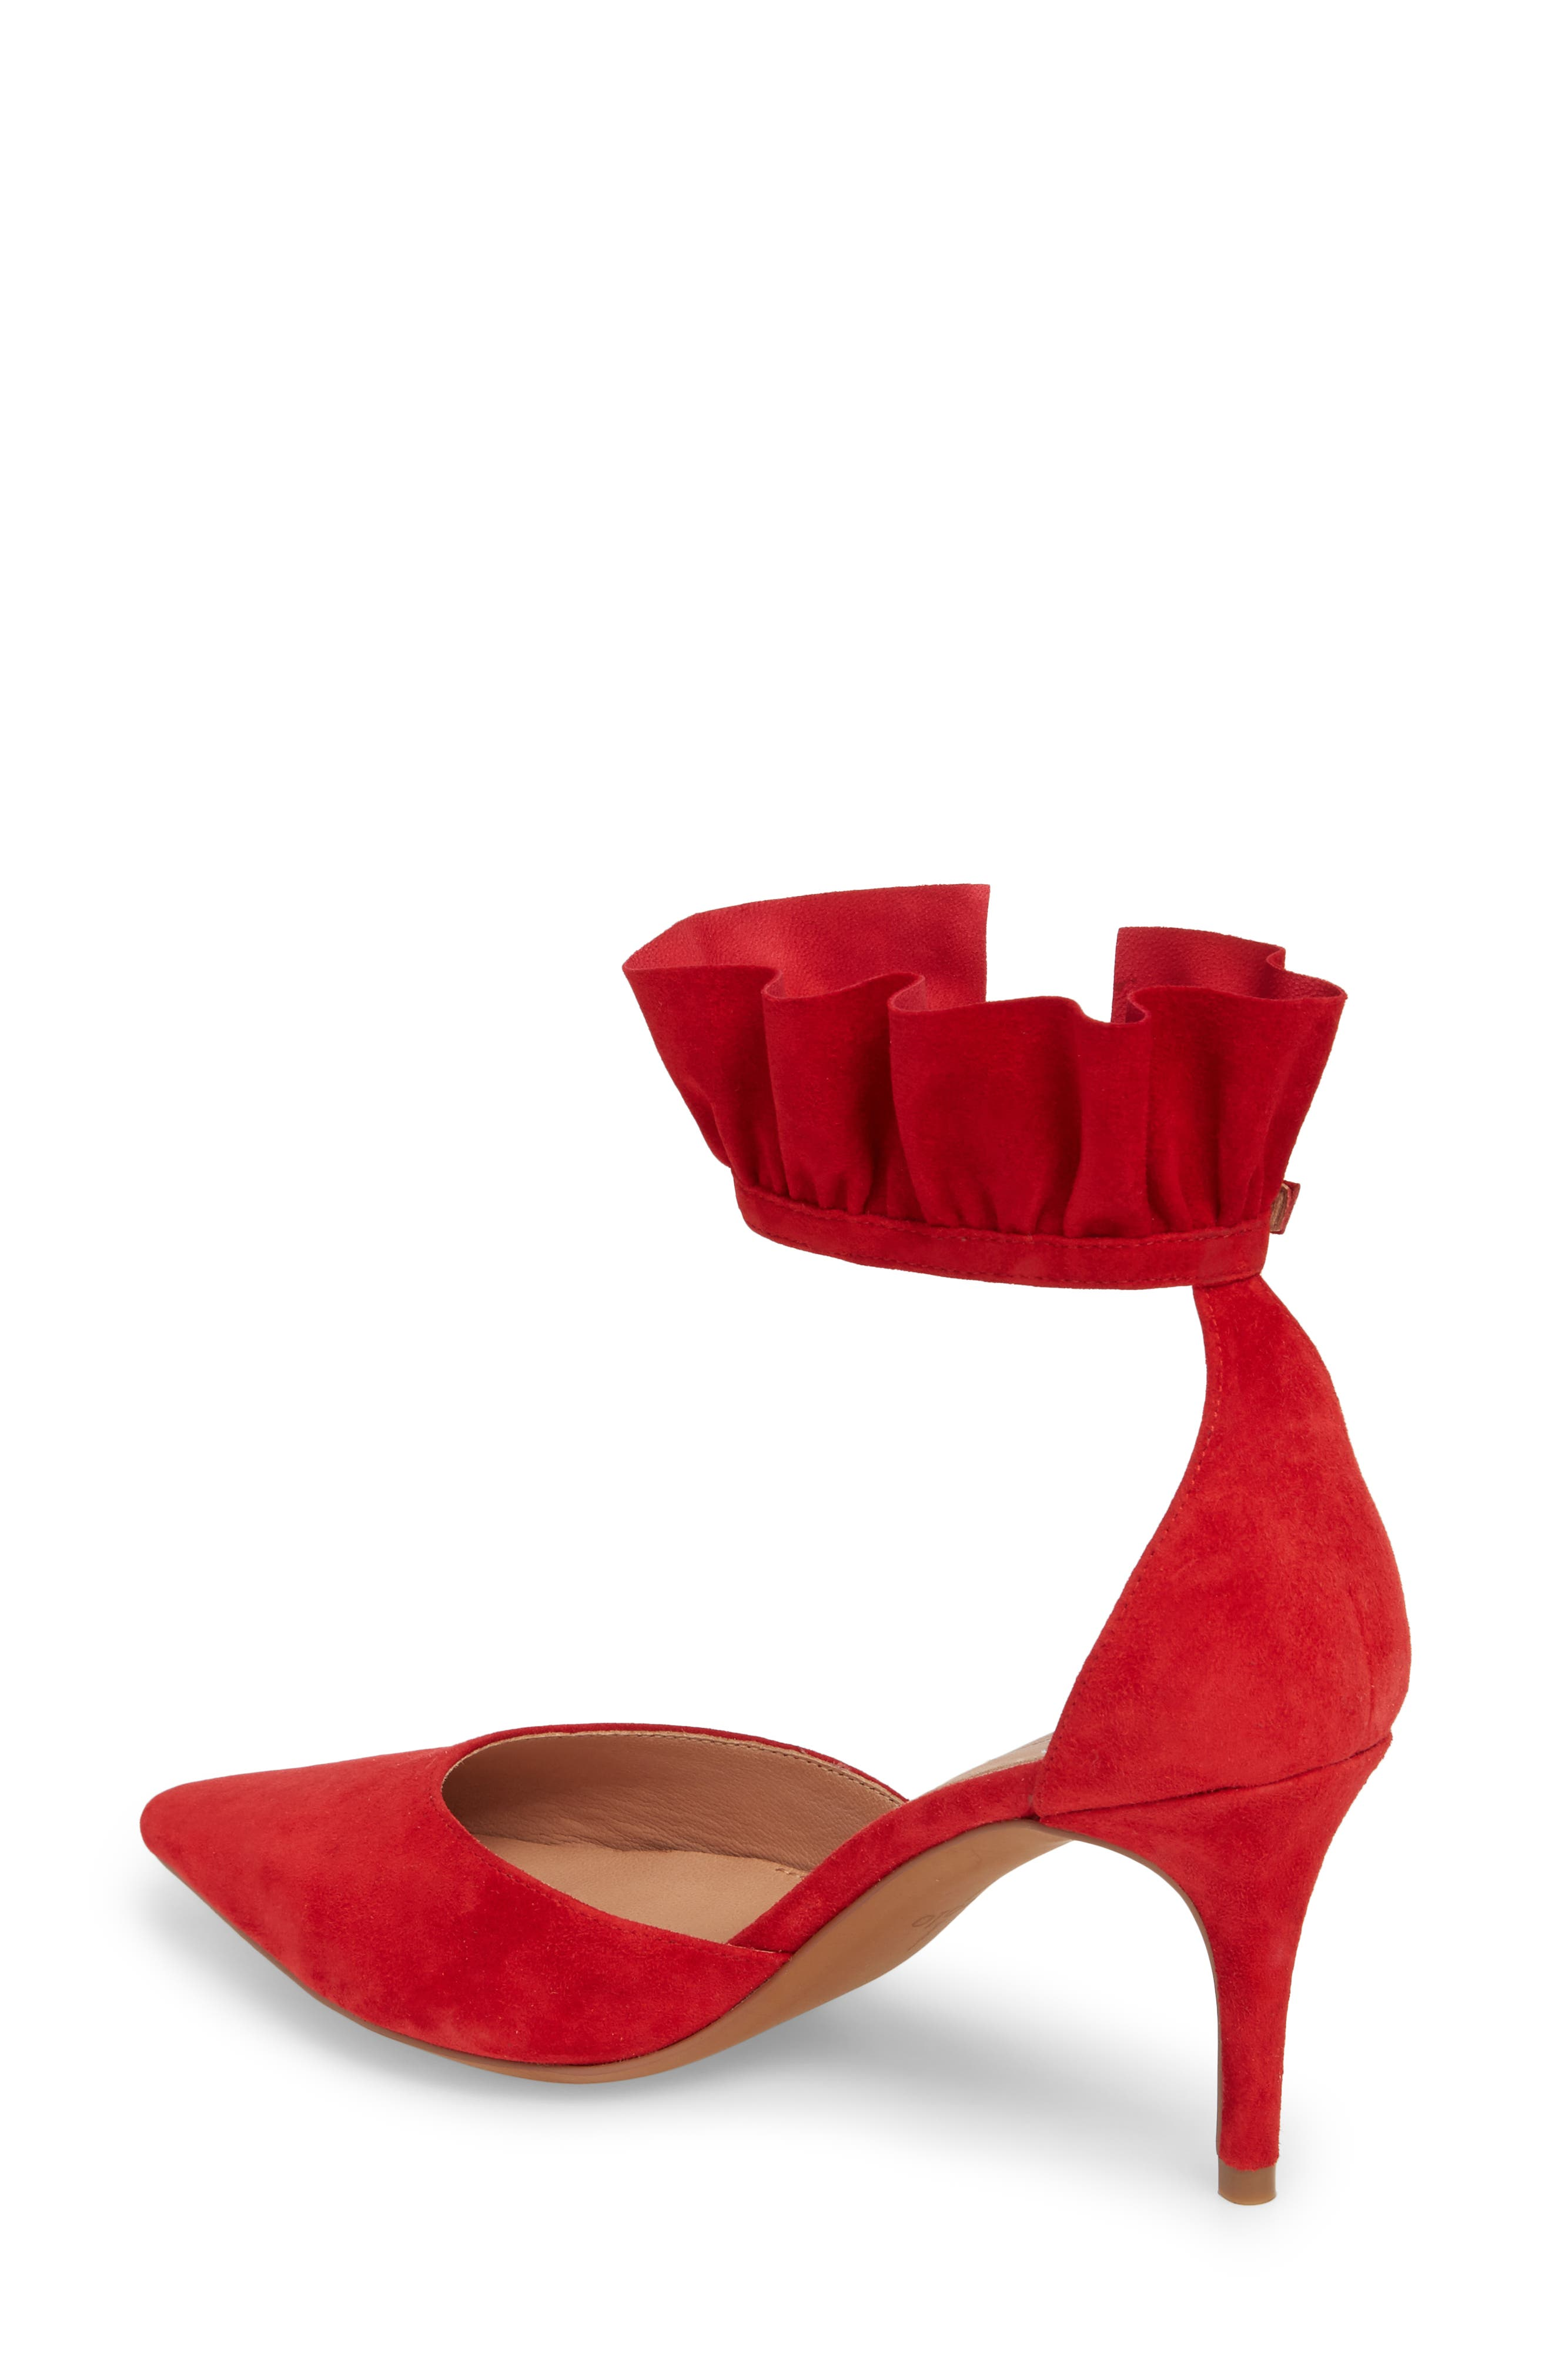 Pammy Ruffled Pointy Toe Pump,                             Alternate thumbnail 2, color,                             Red Suede